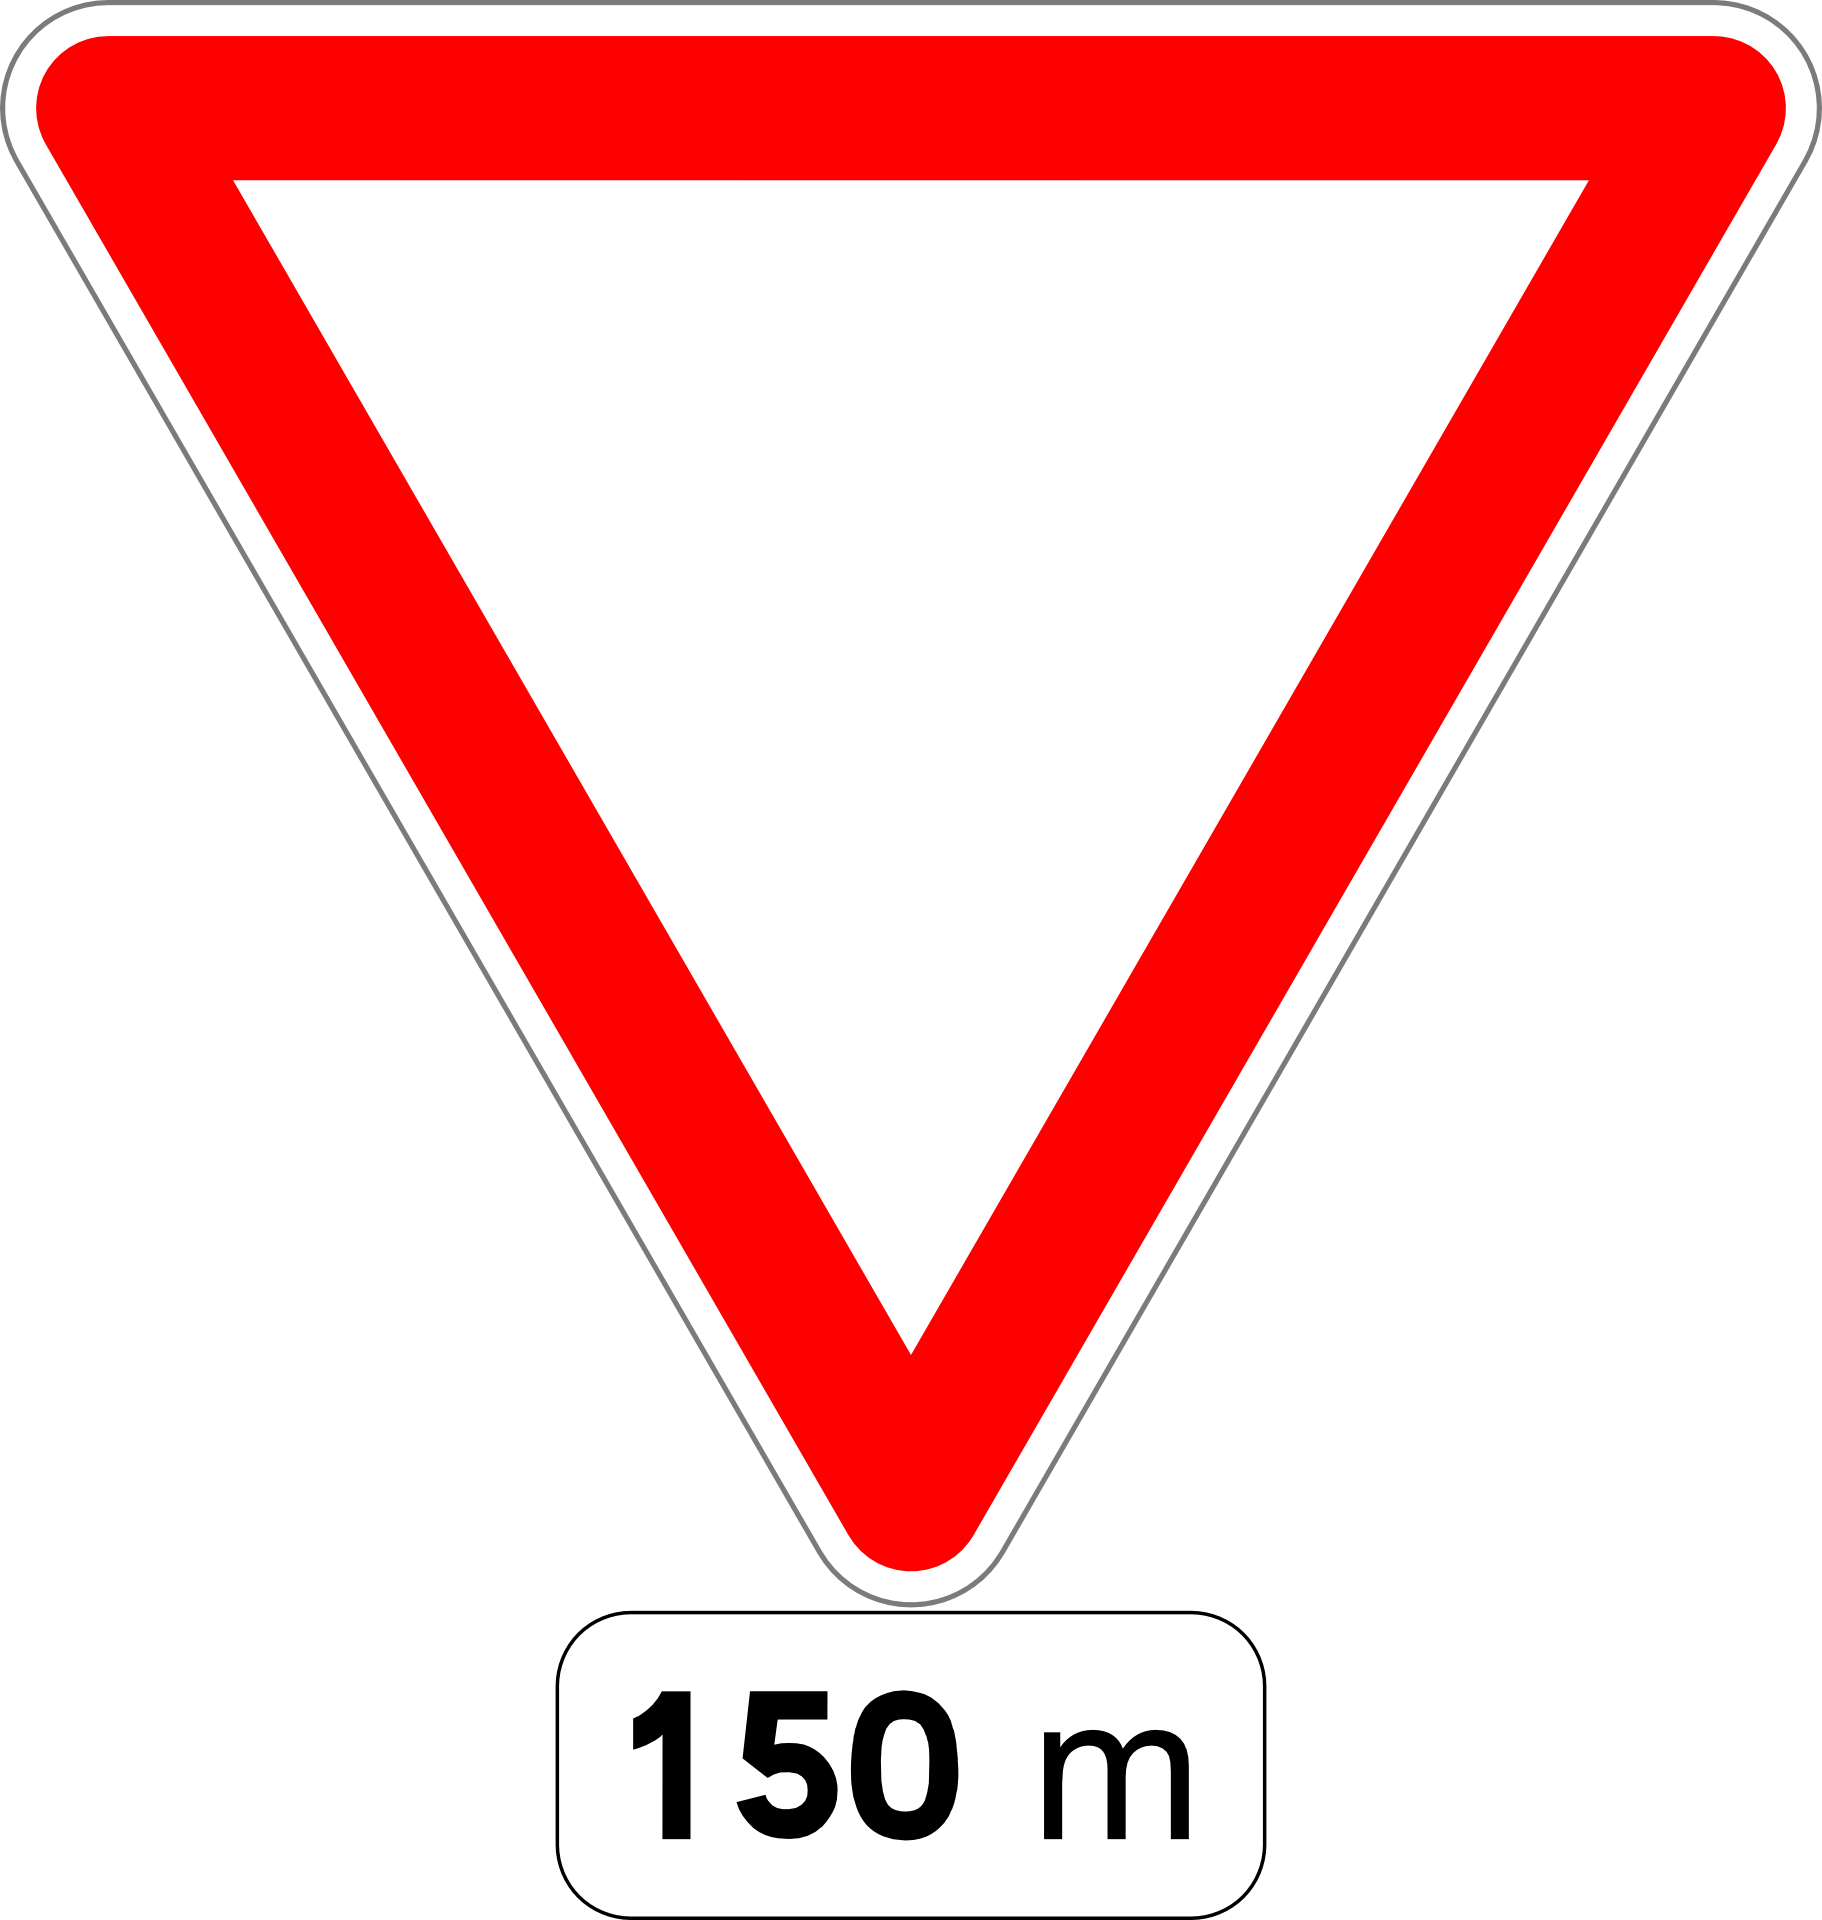 Yield sign png. Car traffic road fig